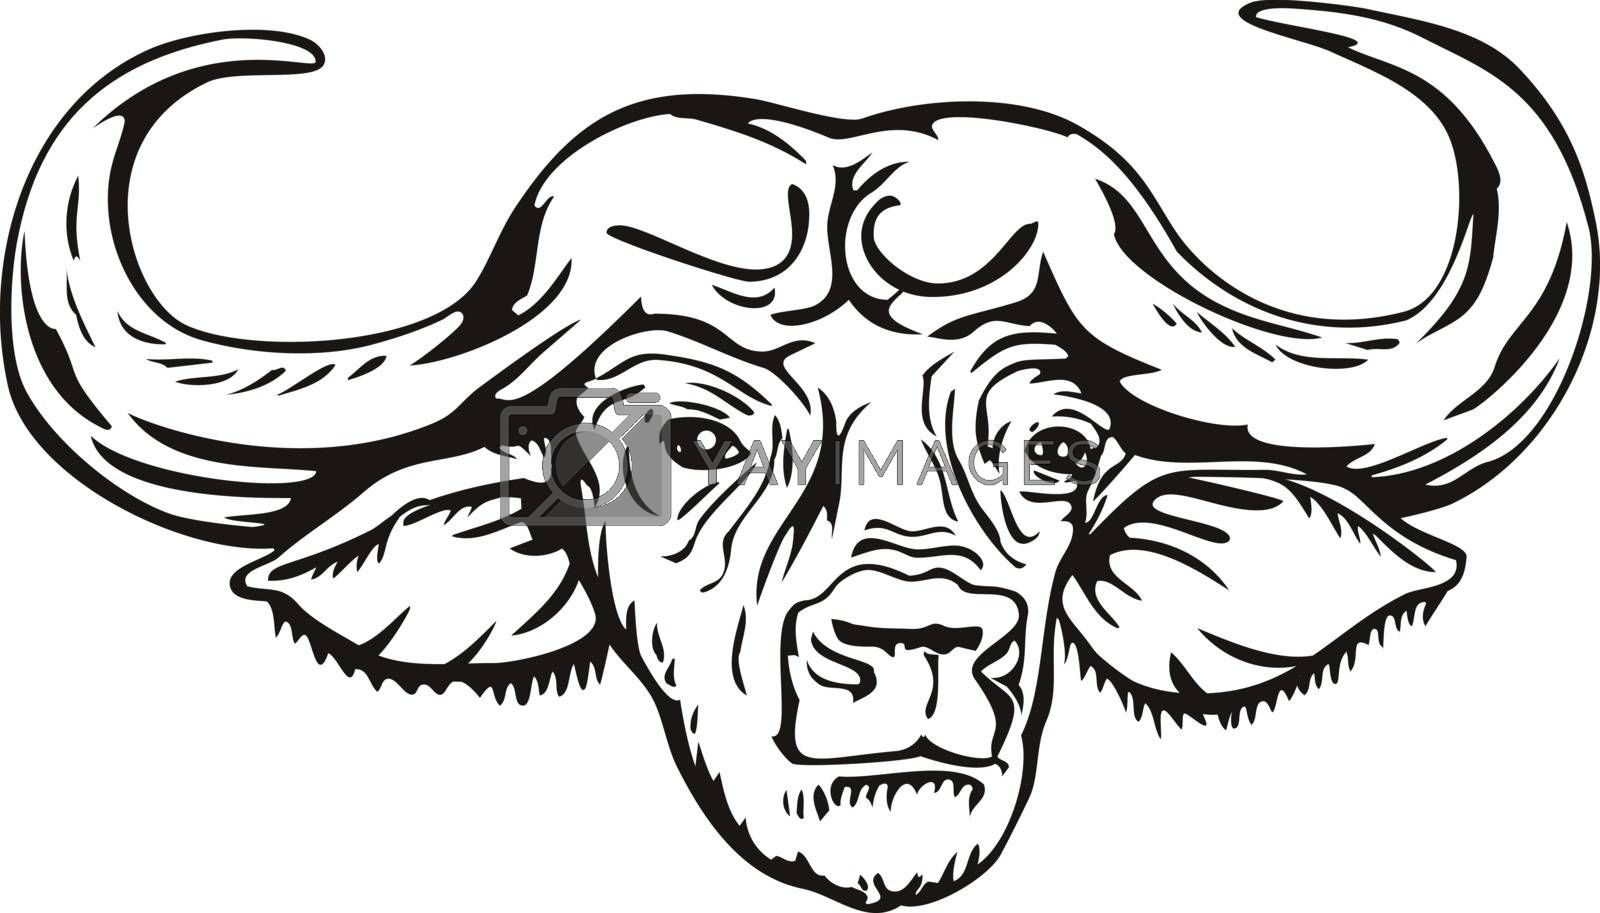 Retro woodcut style illustration head of an African buffalo or Cape buffalo Syncerus caffer, a large sub-Saharan African bovine, viewed from front on isolated background done in black and white.